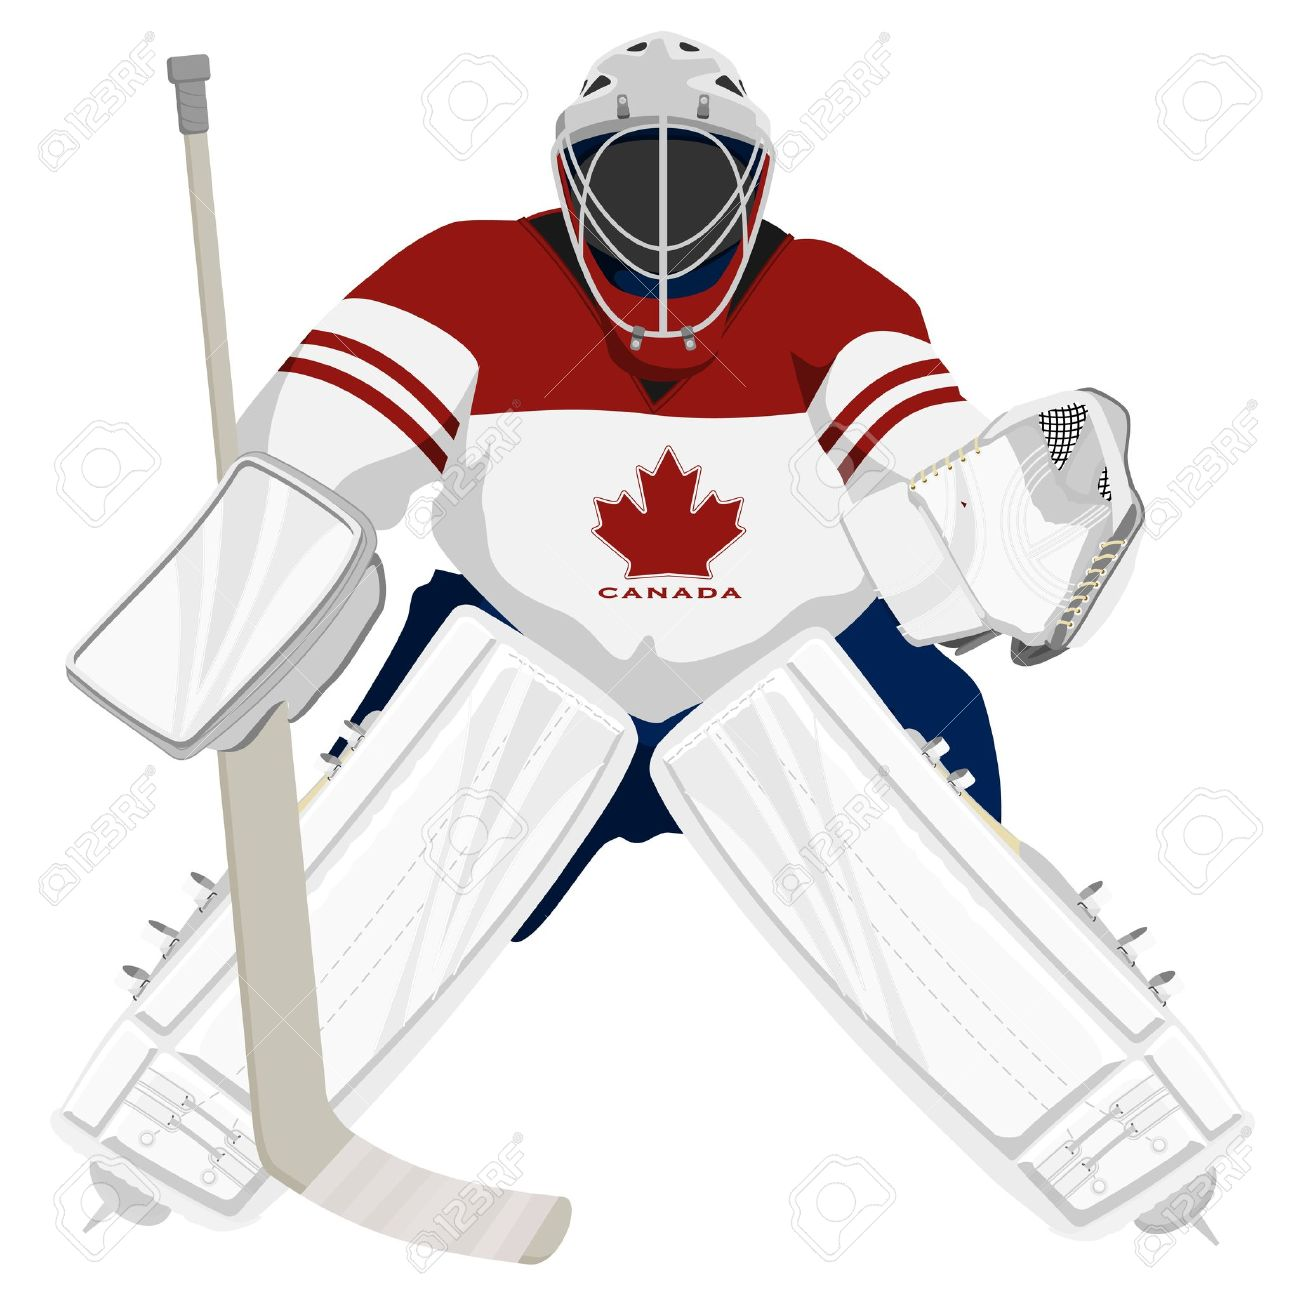 team canada hockey goalie royalty free cliparts vectors and stock rh 123rf com hockey goalie clipart hockey goalie helmet clipart